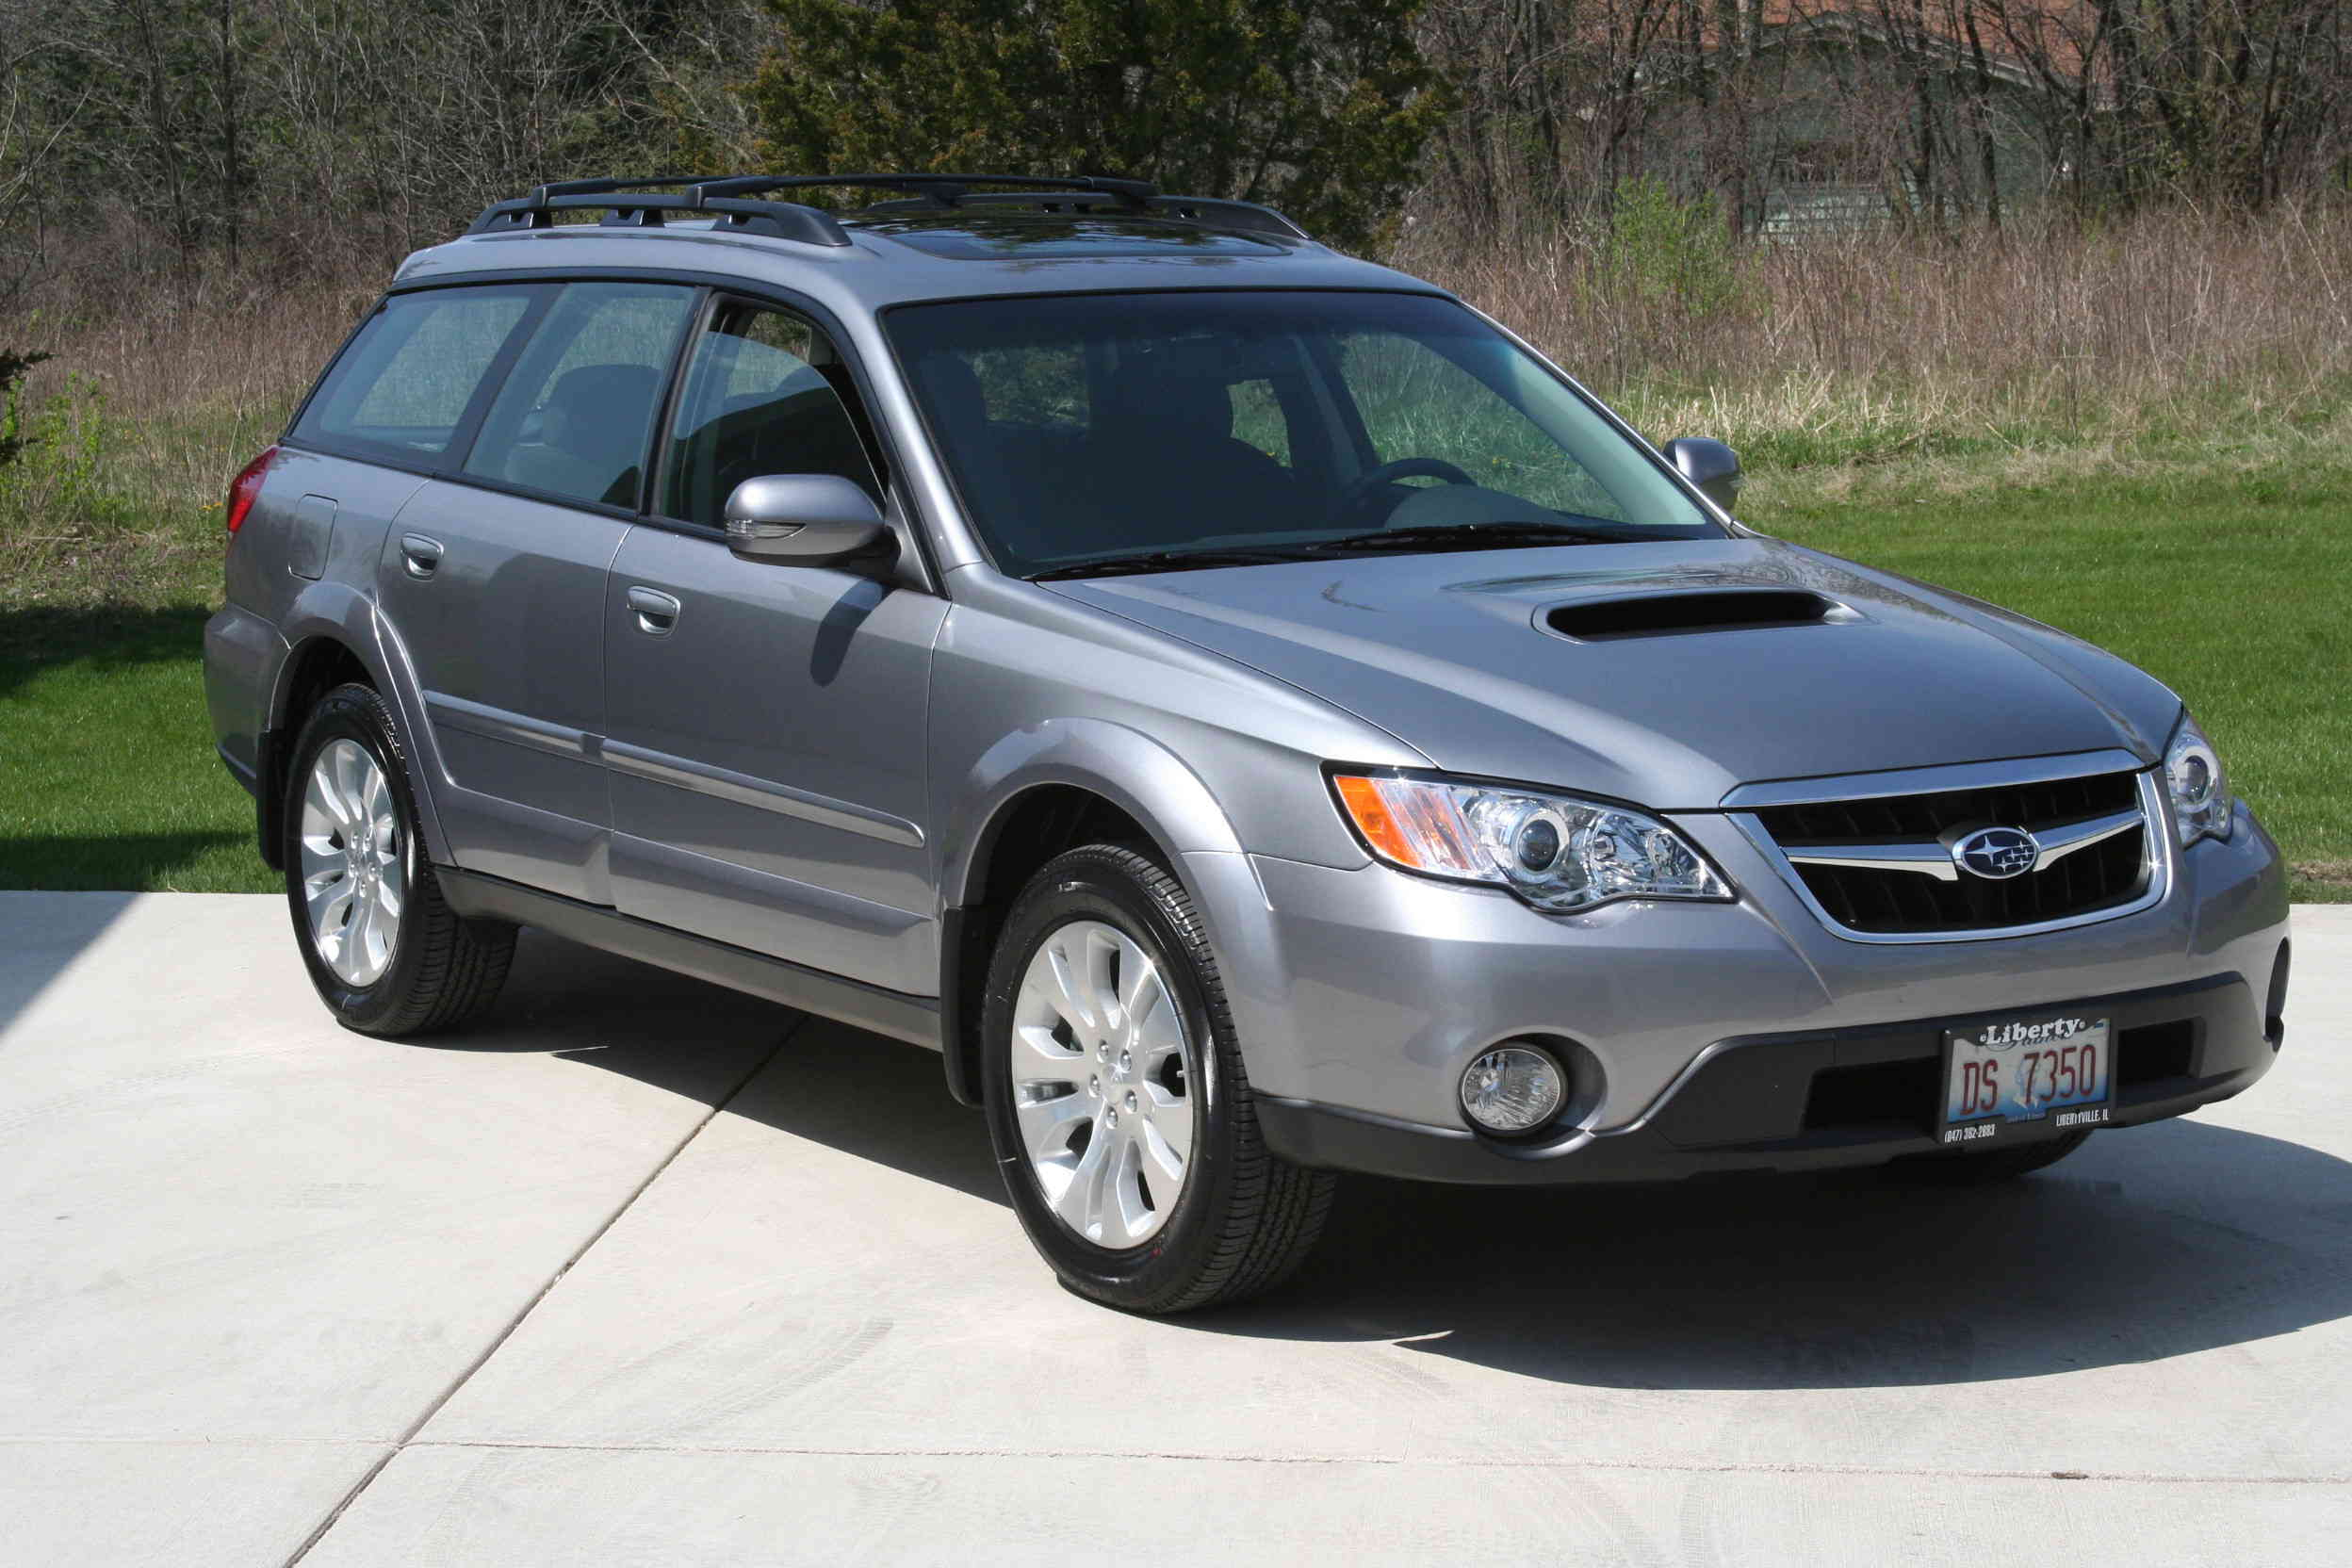 D Took Plunge Xt Limited Outback on 2005 Subaru Outback Turbo